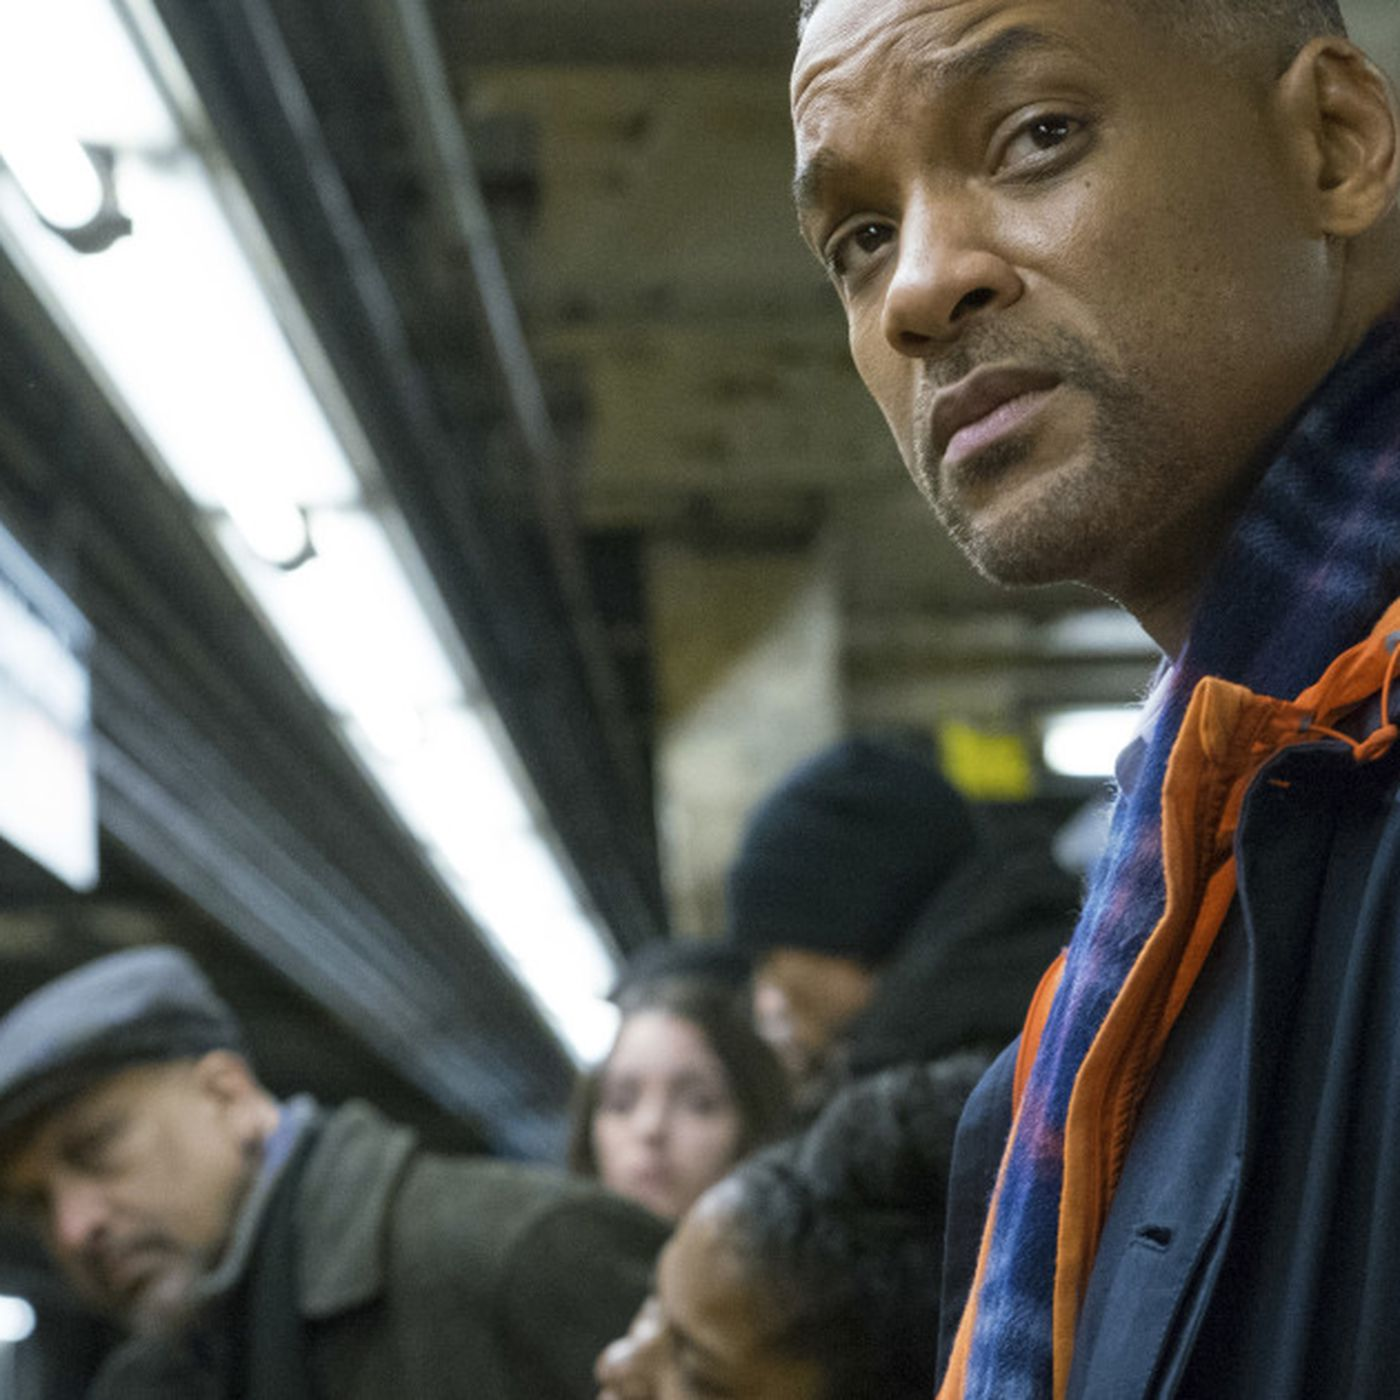 Collateral Beauty Goes About Its Tearjerking In Contrived Ways Chicago Sun Times